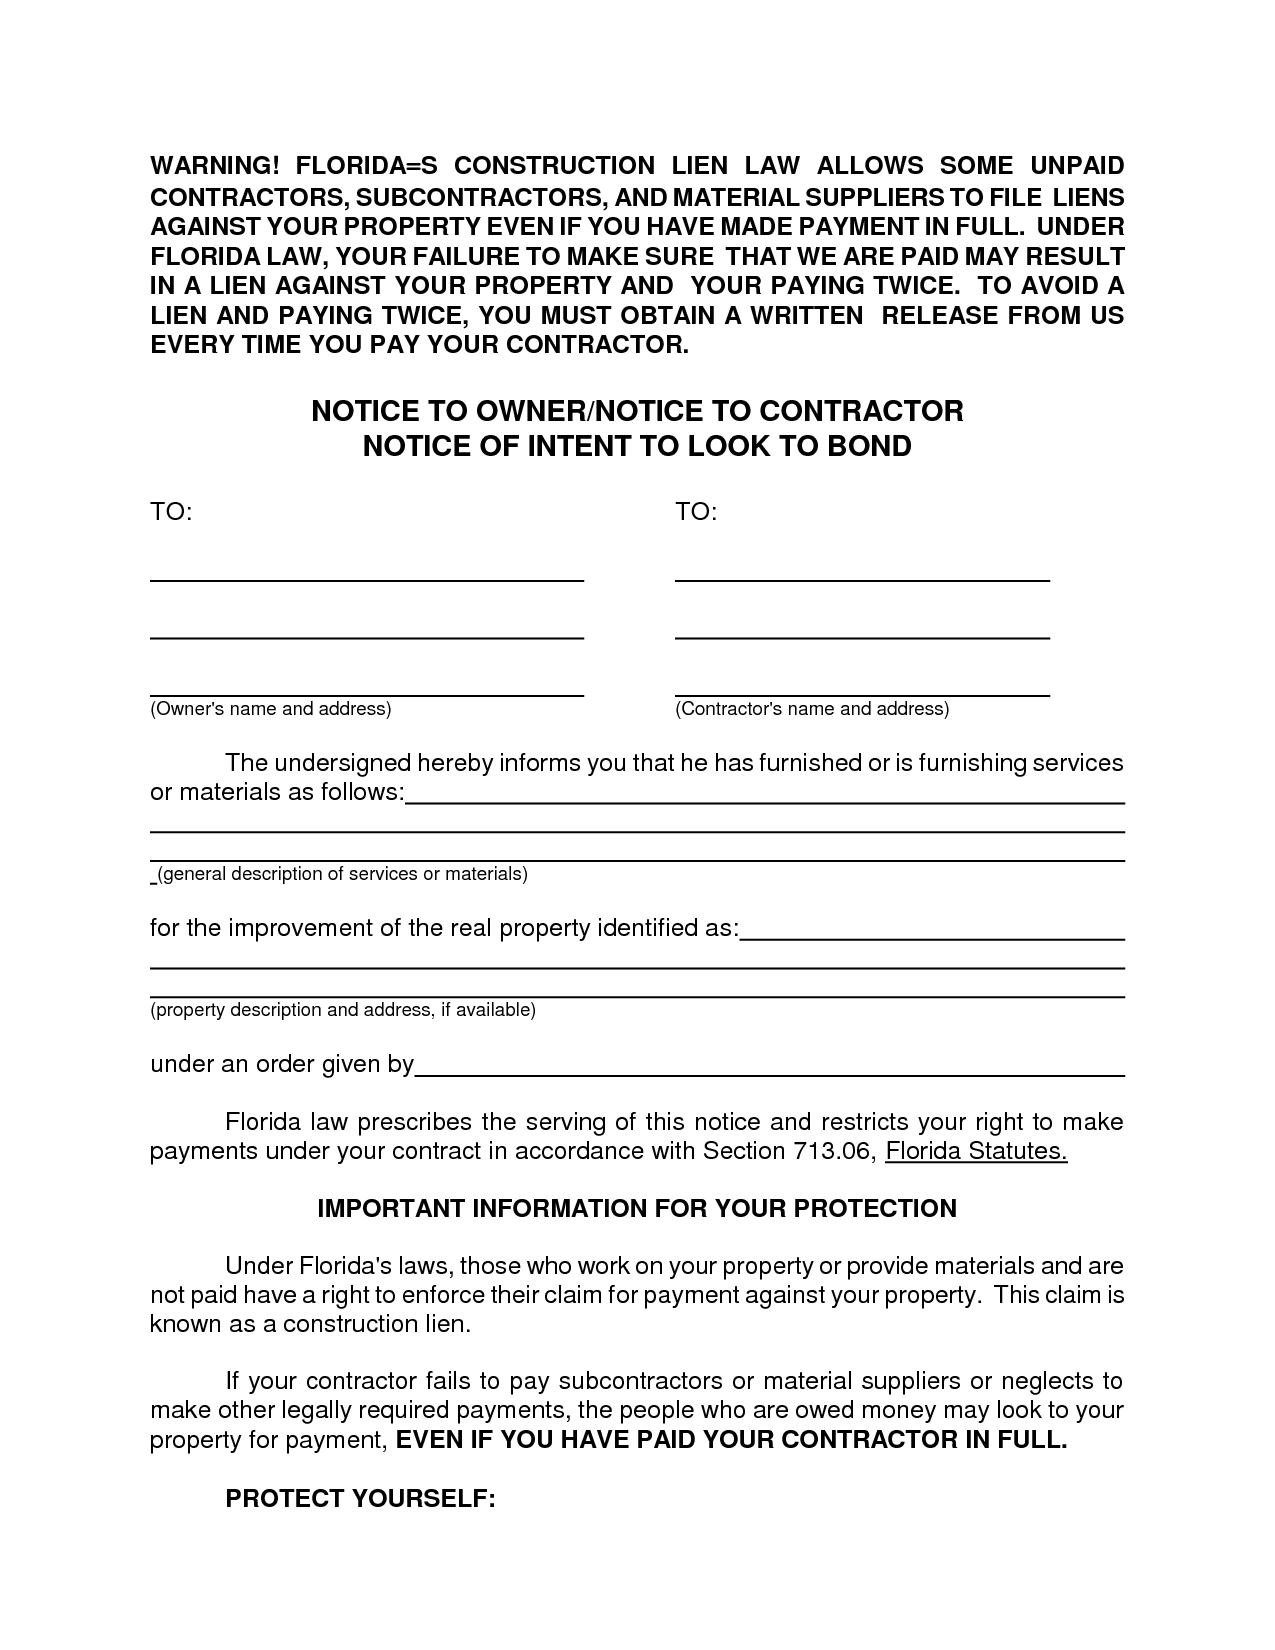 Letter Of Intent to File A Lien Template - Intent to Lien Letter Florida Concept Affidavit